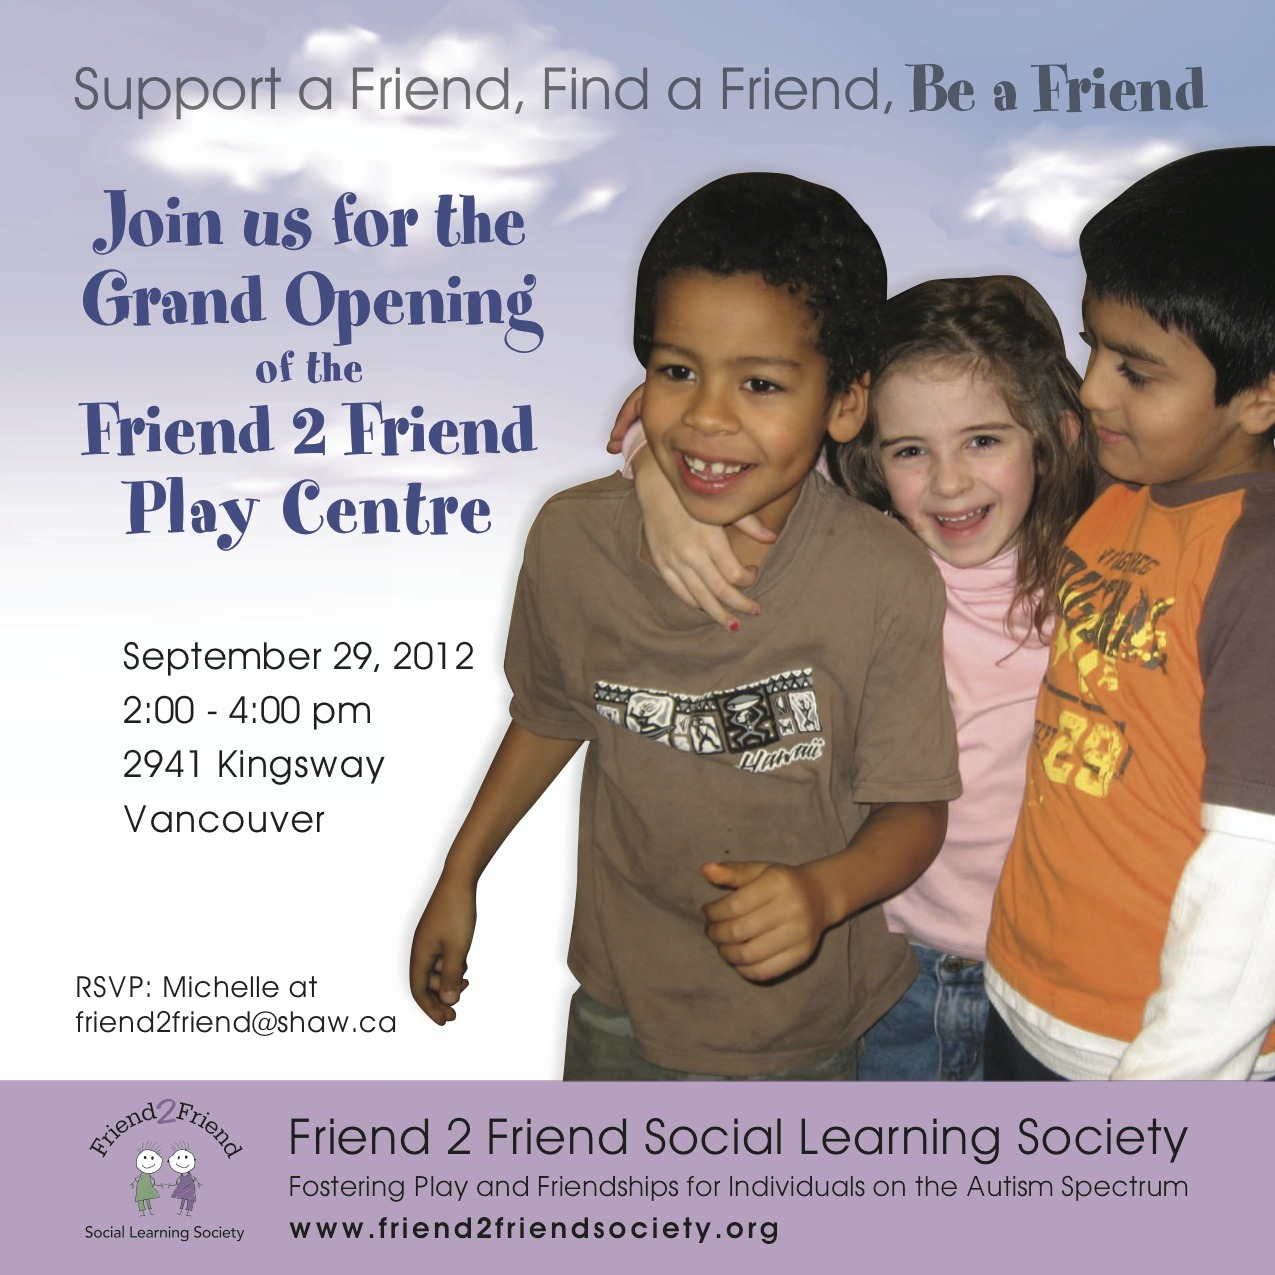 Please join us on September 29th just RSVP friend2friend@shaw.ca